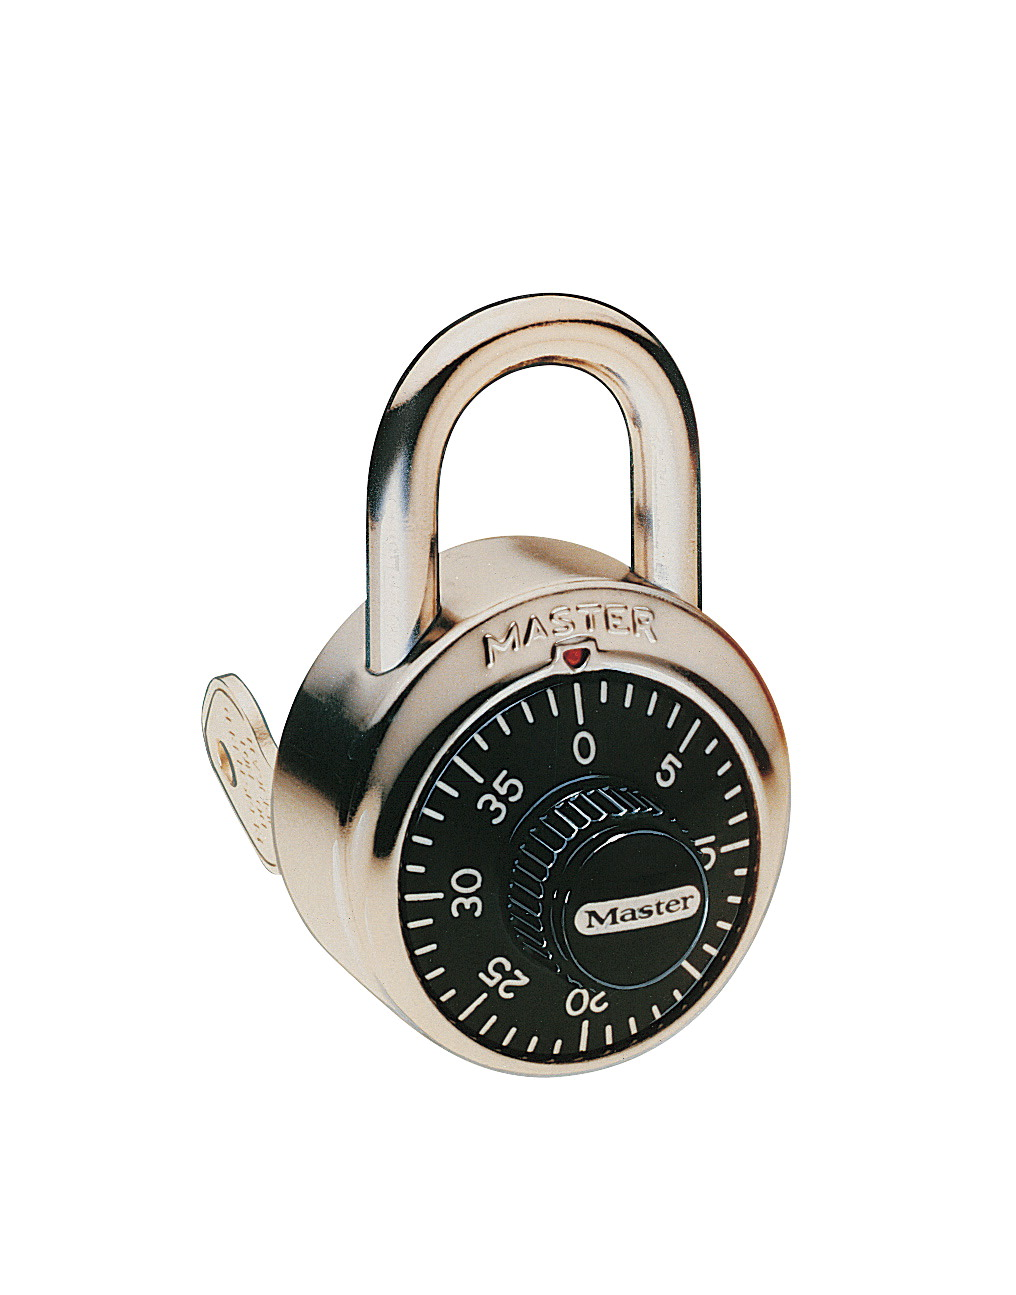 Master Lock Key Controlled Combination Padlock 1525, Various Options